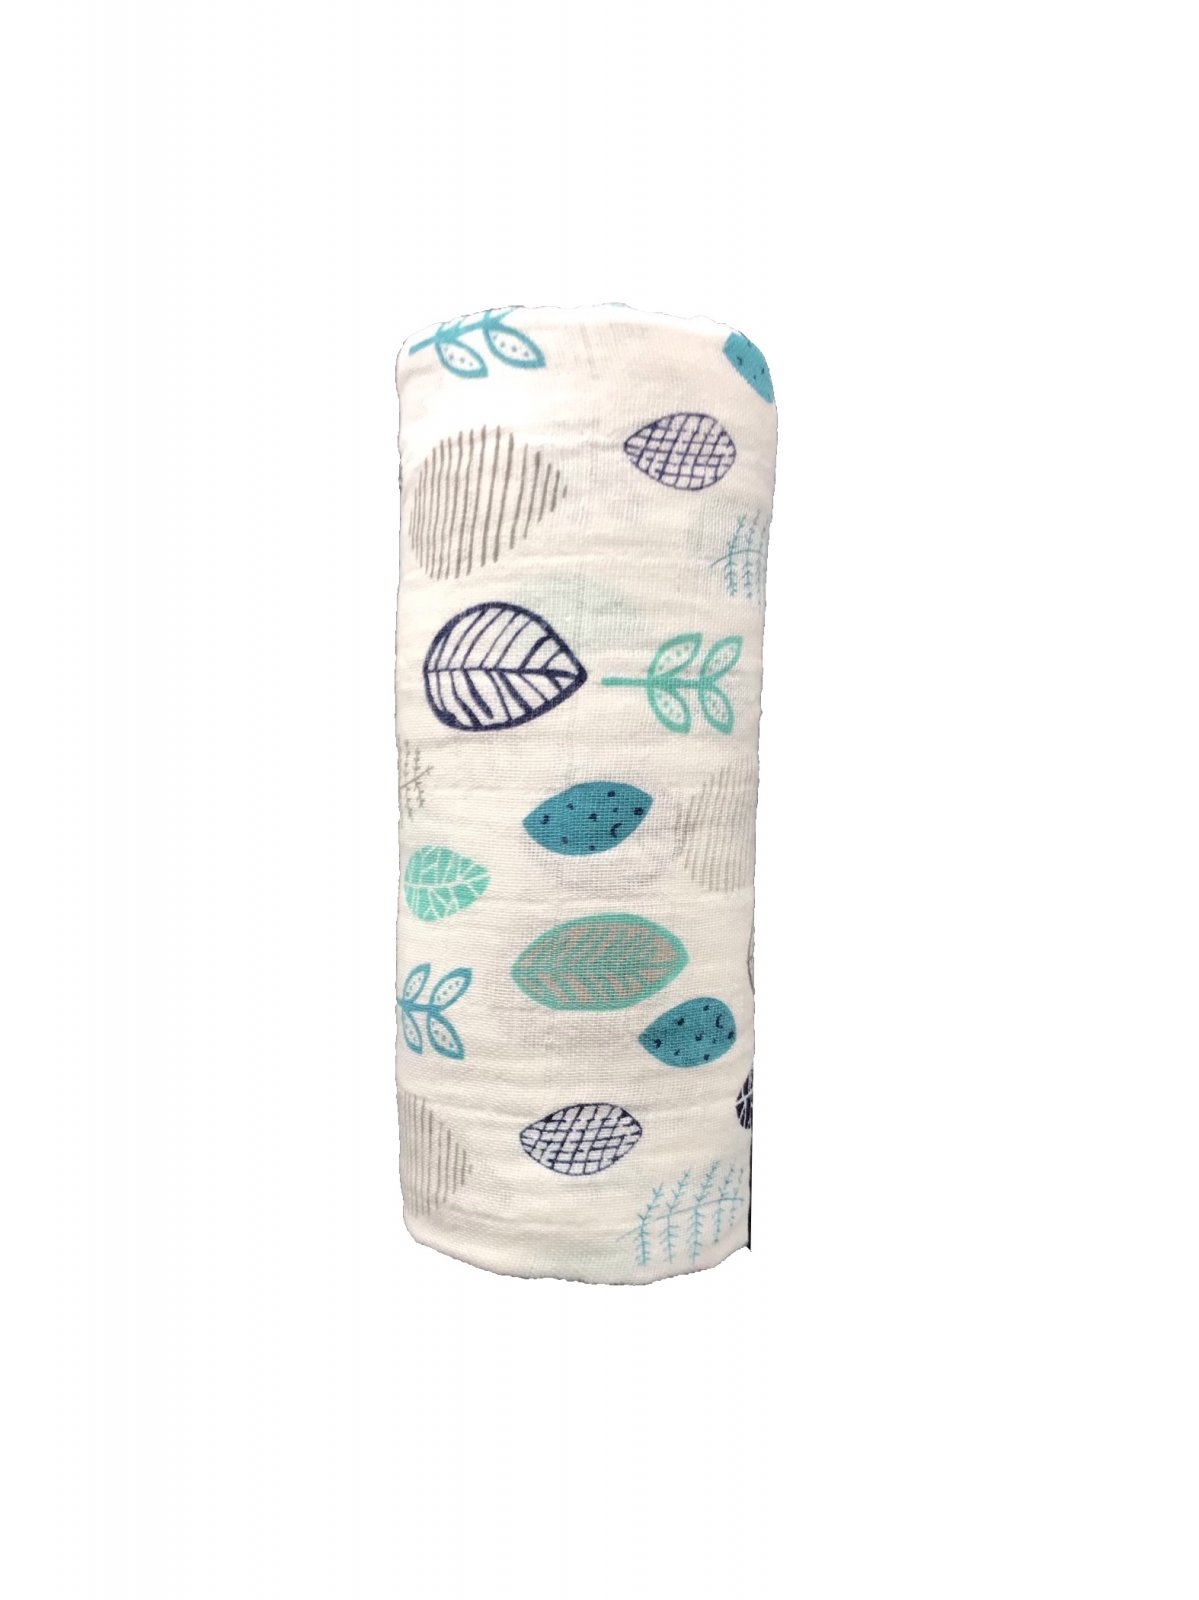 Leaves Teal Navy & Gray Swaddle